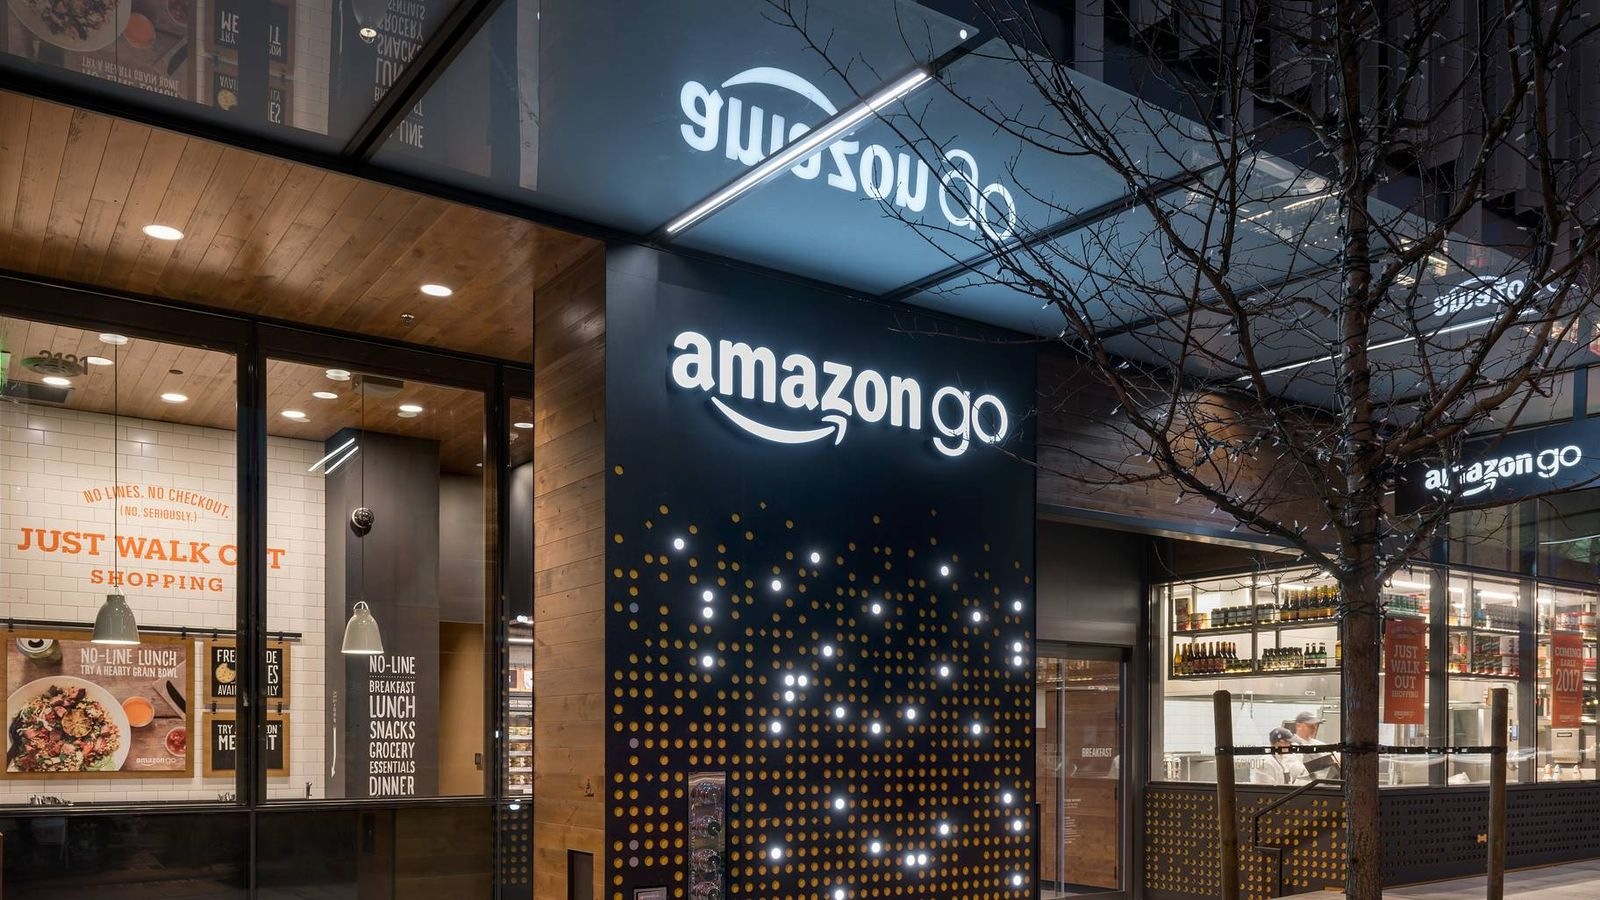 Amazon Go is not the future of shopping. It's just a Fairy Tale.